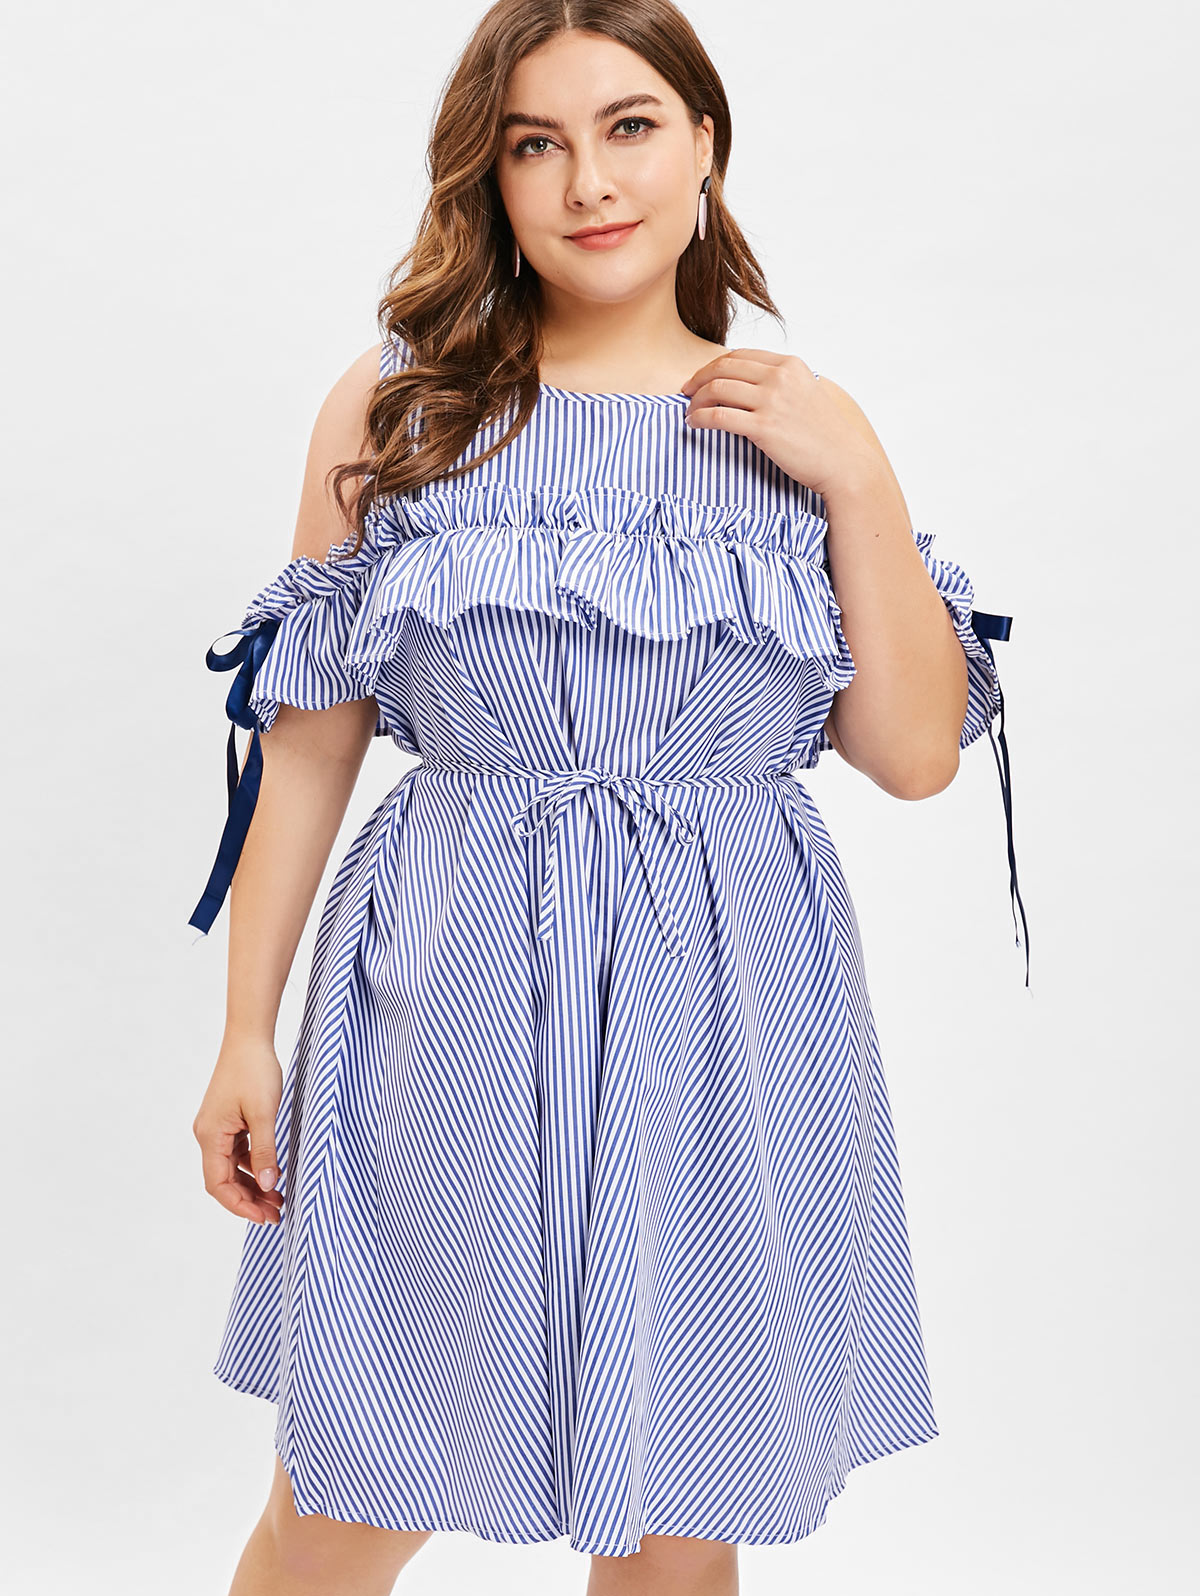 US $12.84 50% OFF|Retro Plus Size Cold Shoulder Stripe Ruffled Women Dress  Summer Ribbon Lace Up Casual Knee Length Elegant Women Dress Robe-in ...